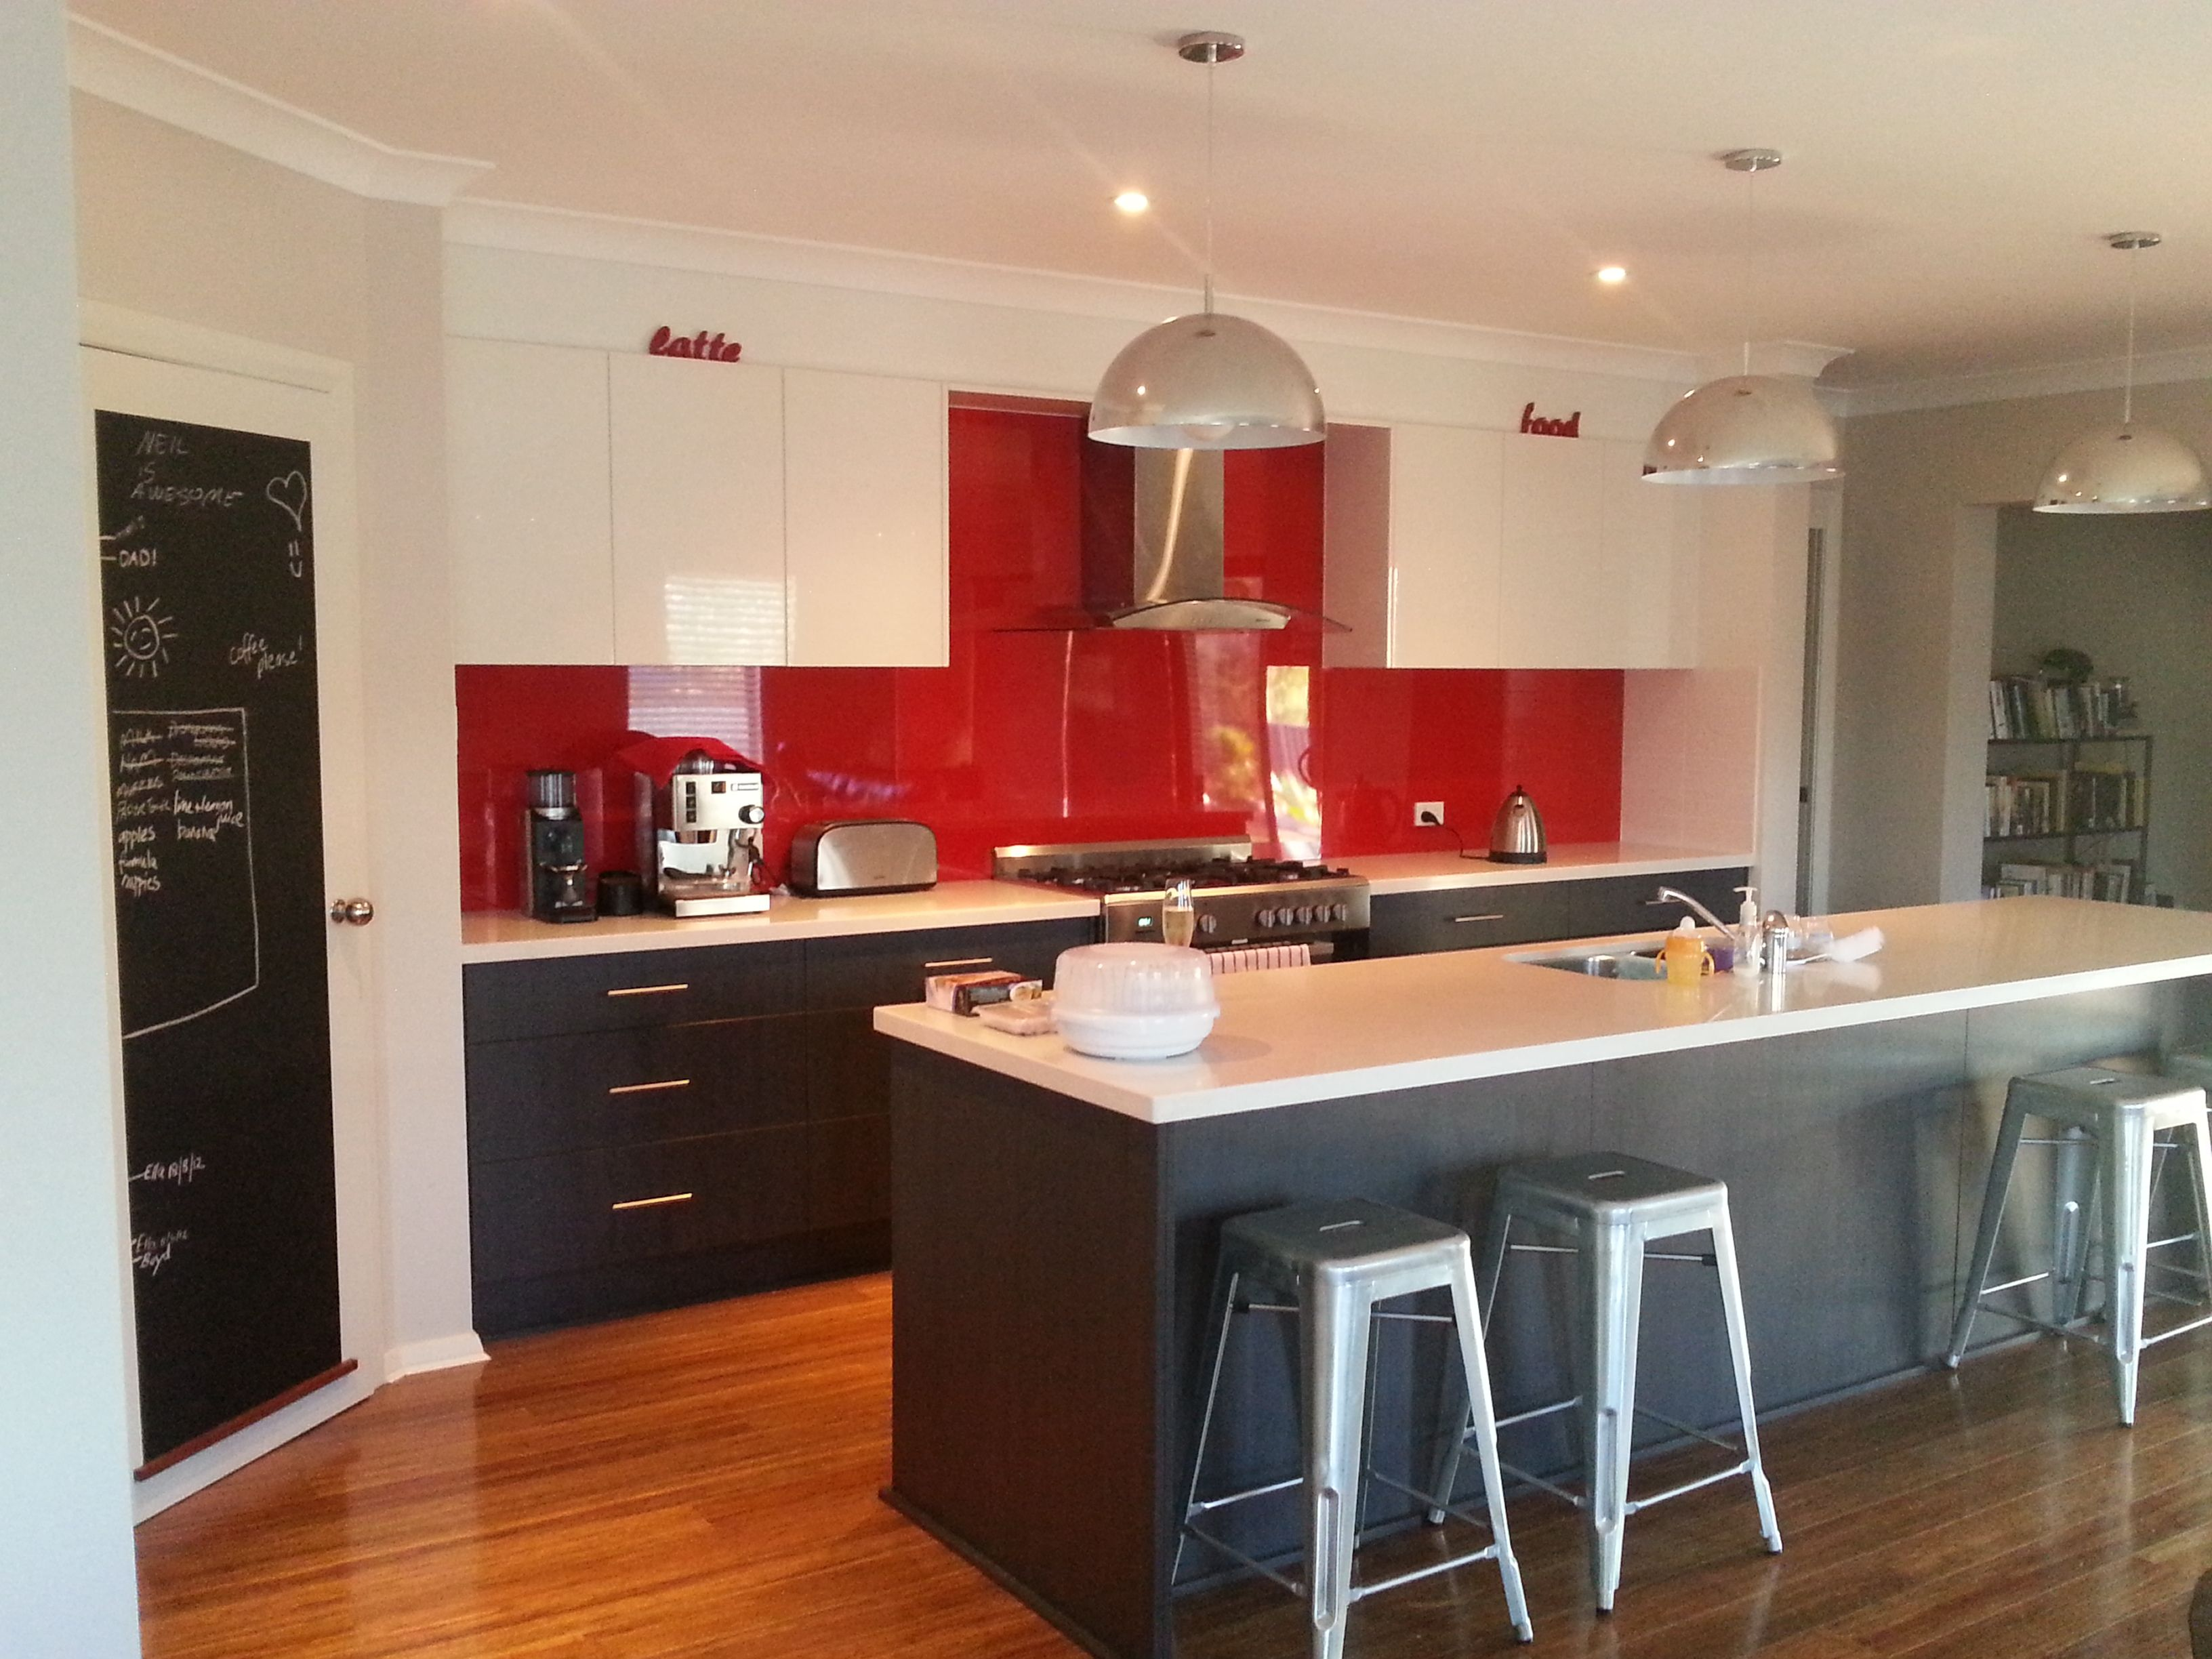 Red Kitchen Splashback Like The Cb Pantry Door